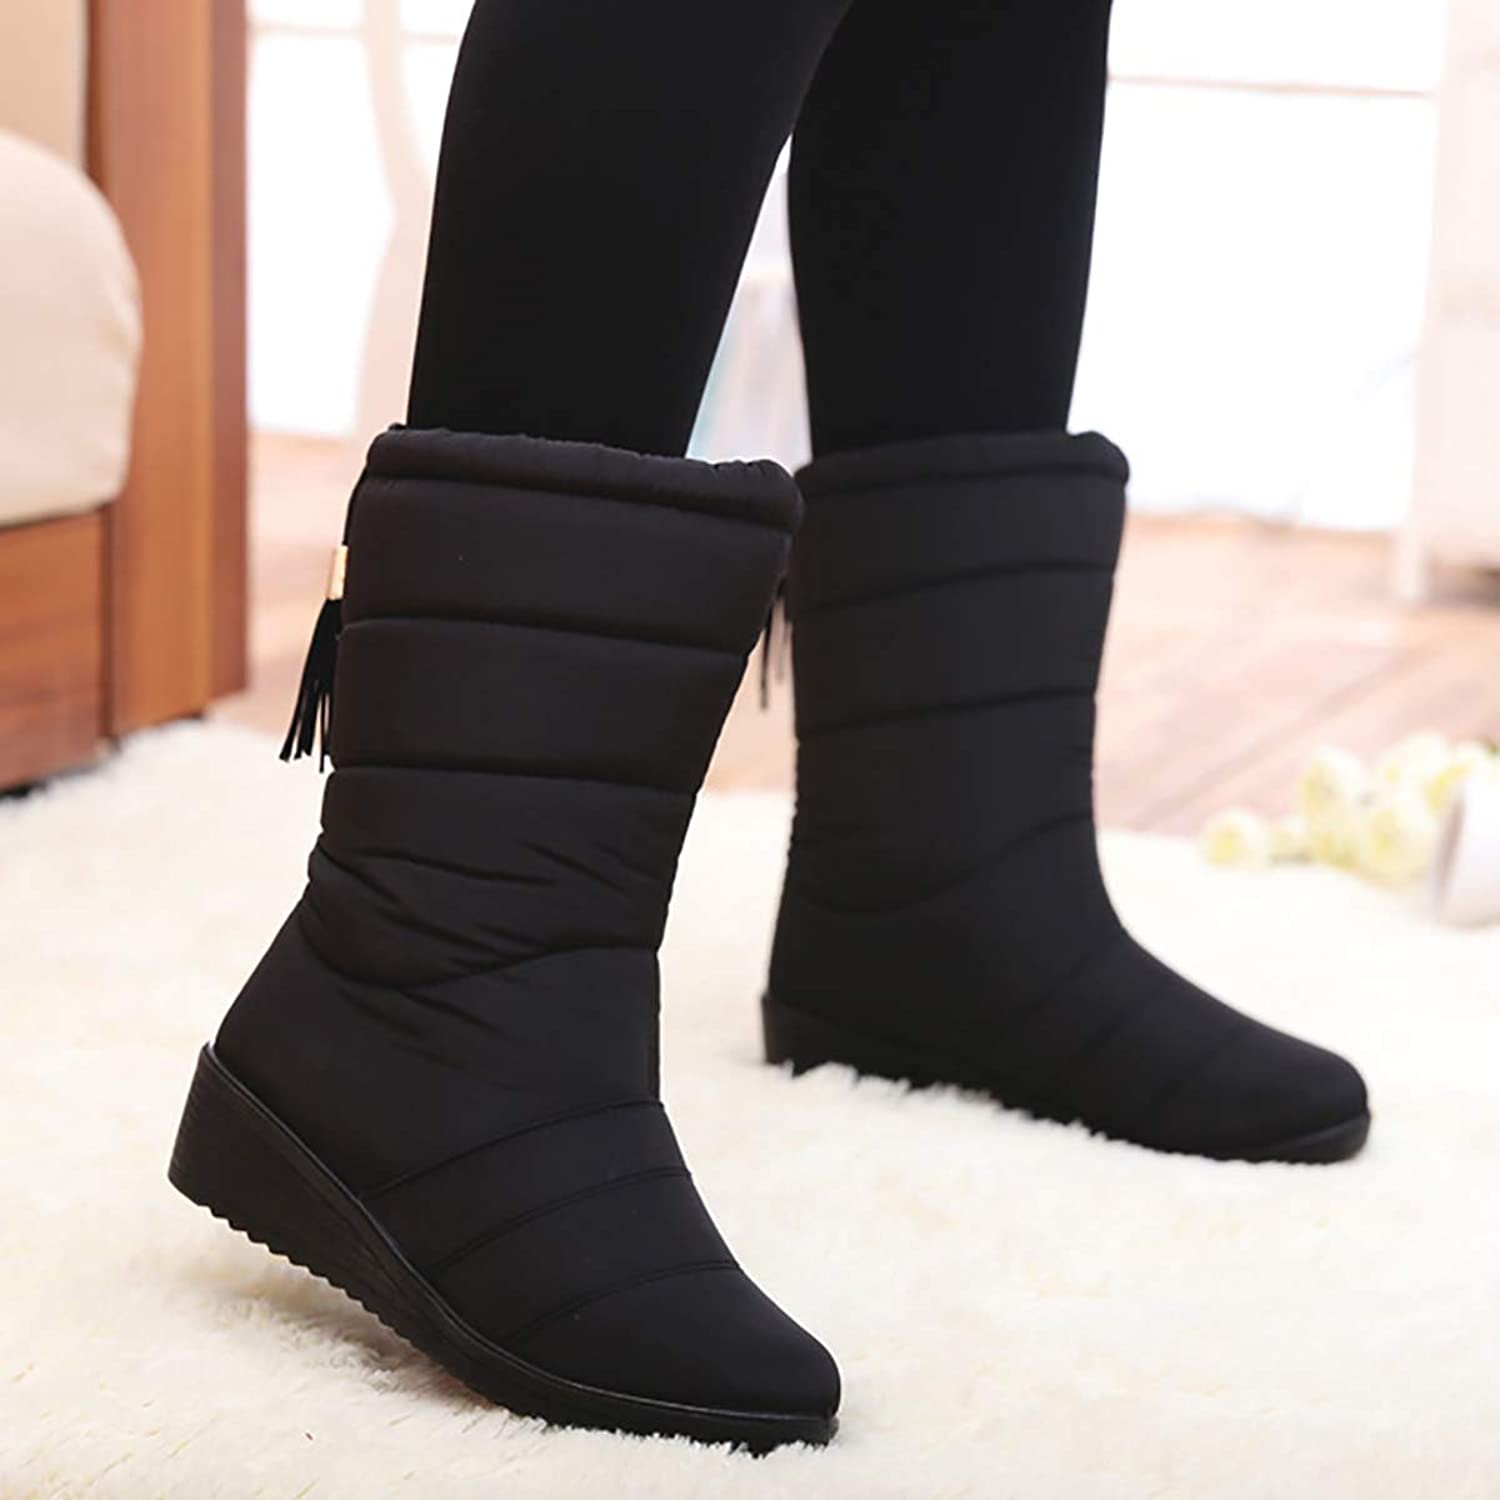 Winter Ladies Tassels Plus Velvet Snow Boots, Mid-Tube Wedges with Warm Women's Boots, Waterproof Non-Slip Women's Boots,Black,35